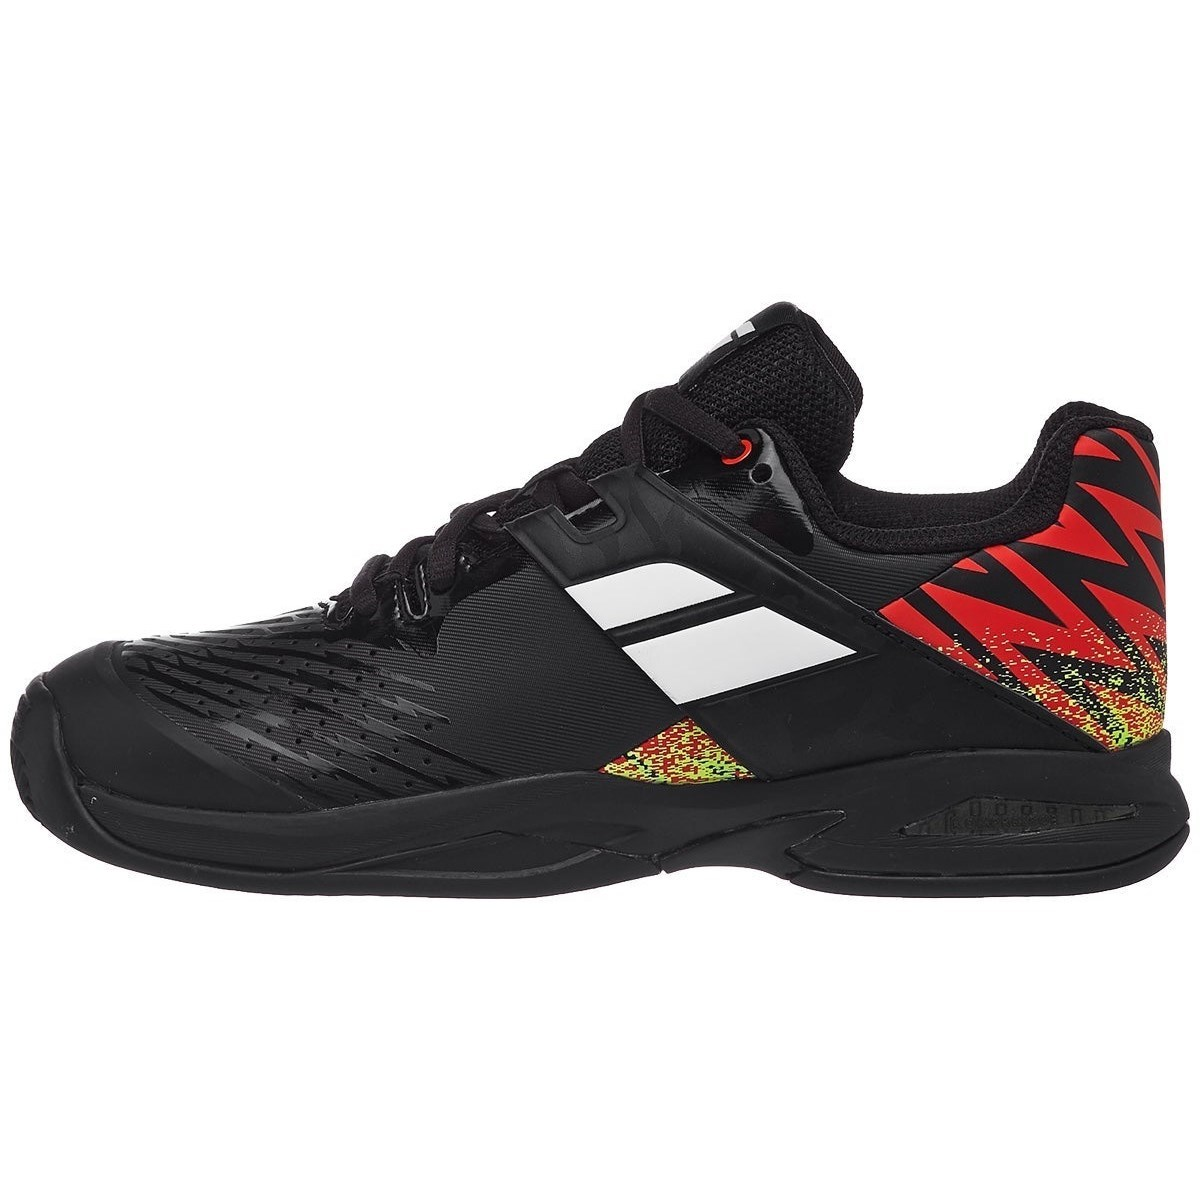 Babolat Propulse Clay Kids Tennis Shoes – Black/White/Red